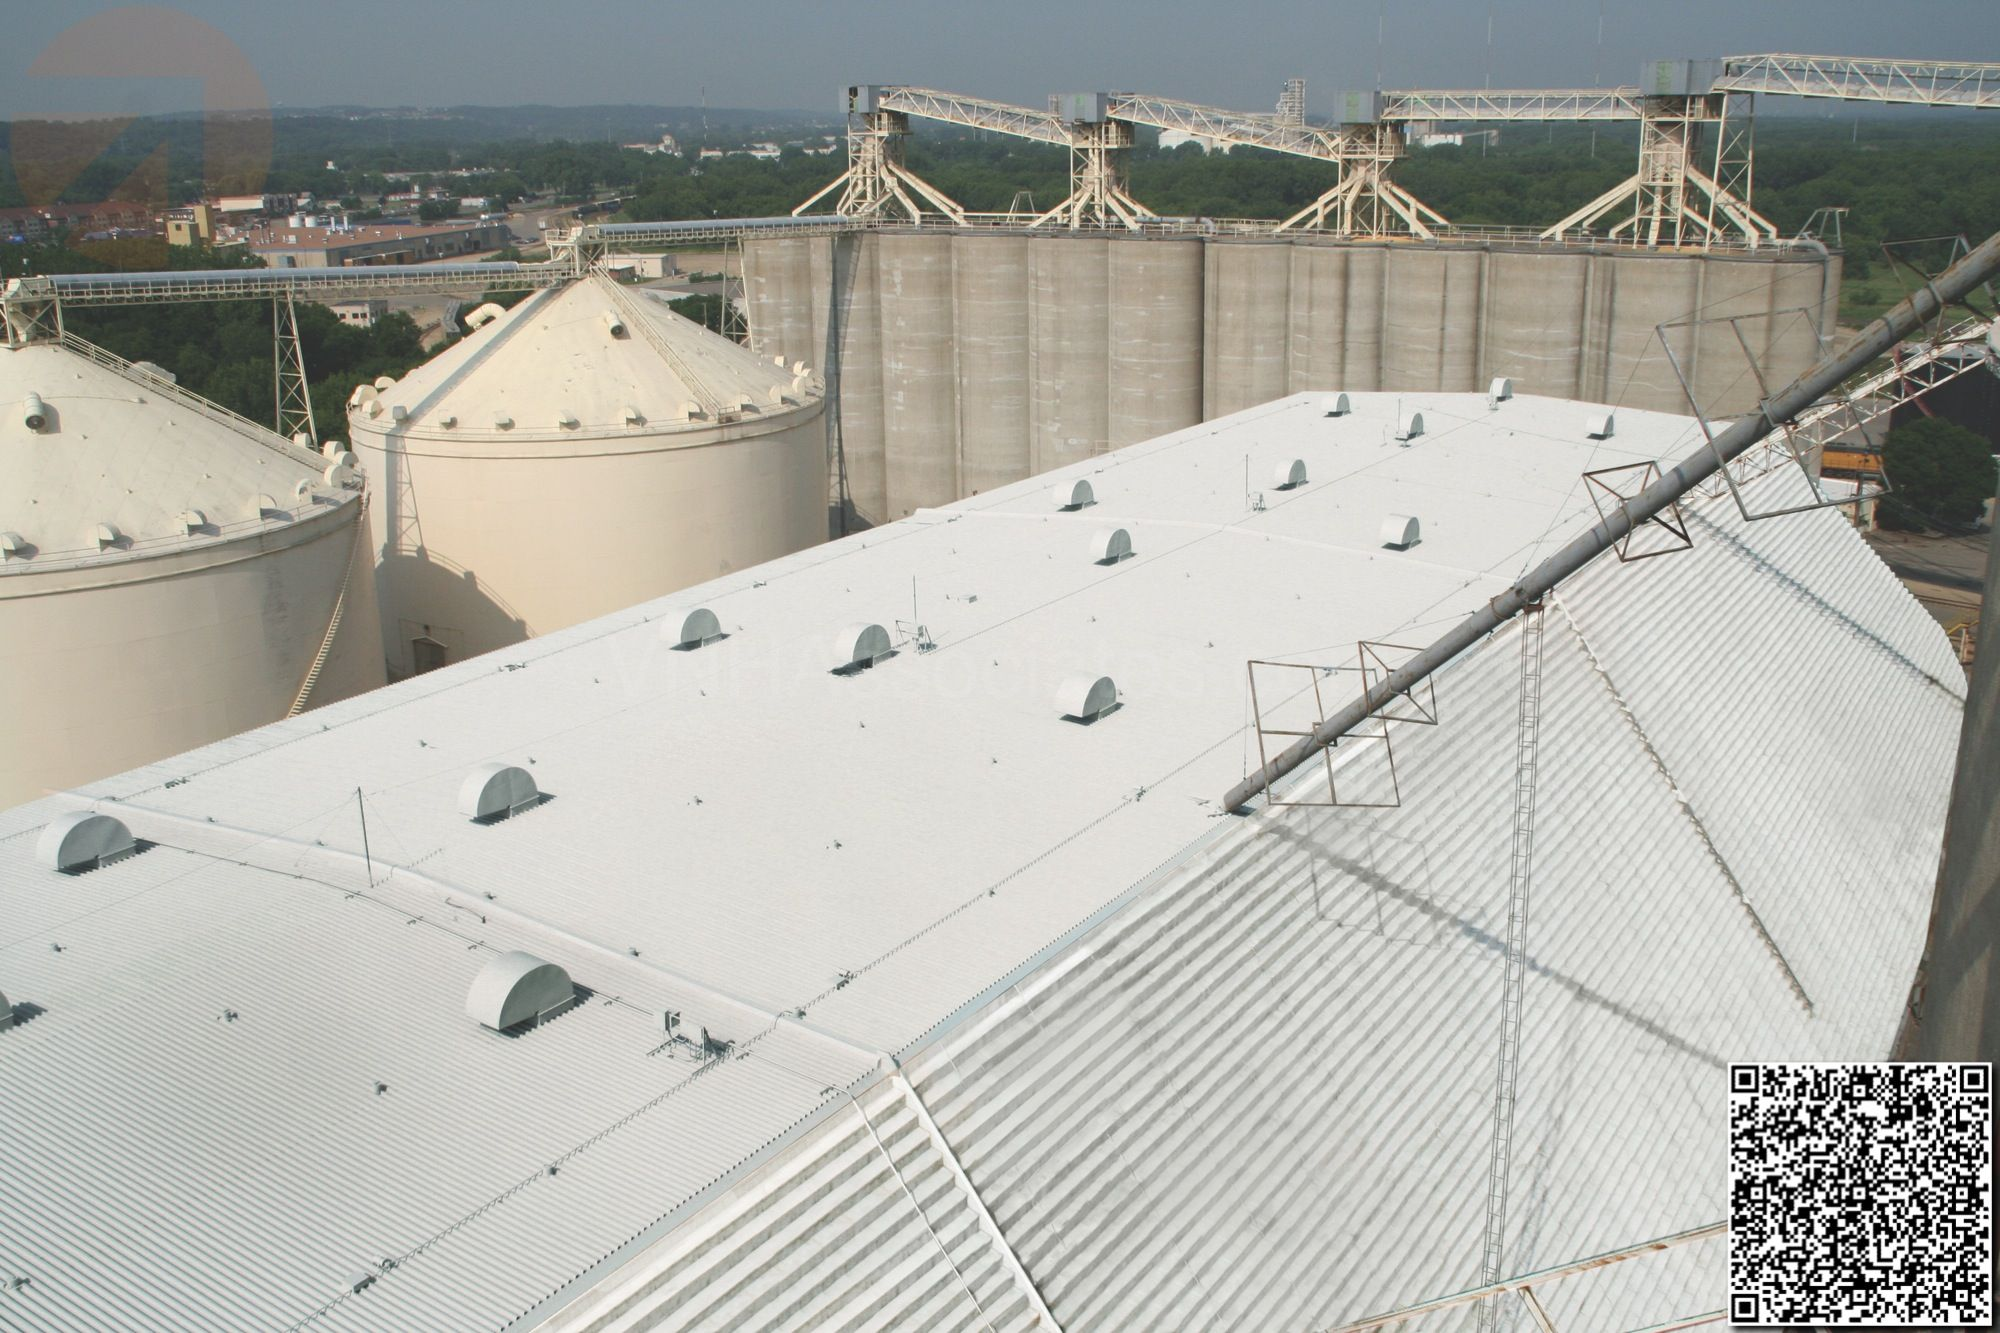 Conklin Elastomeric Foam Membrane White Roof Products And Installation Photos Roofing Installation Photo